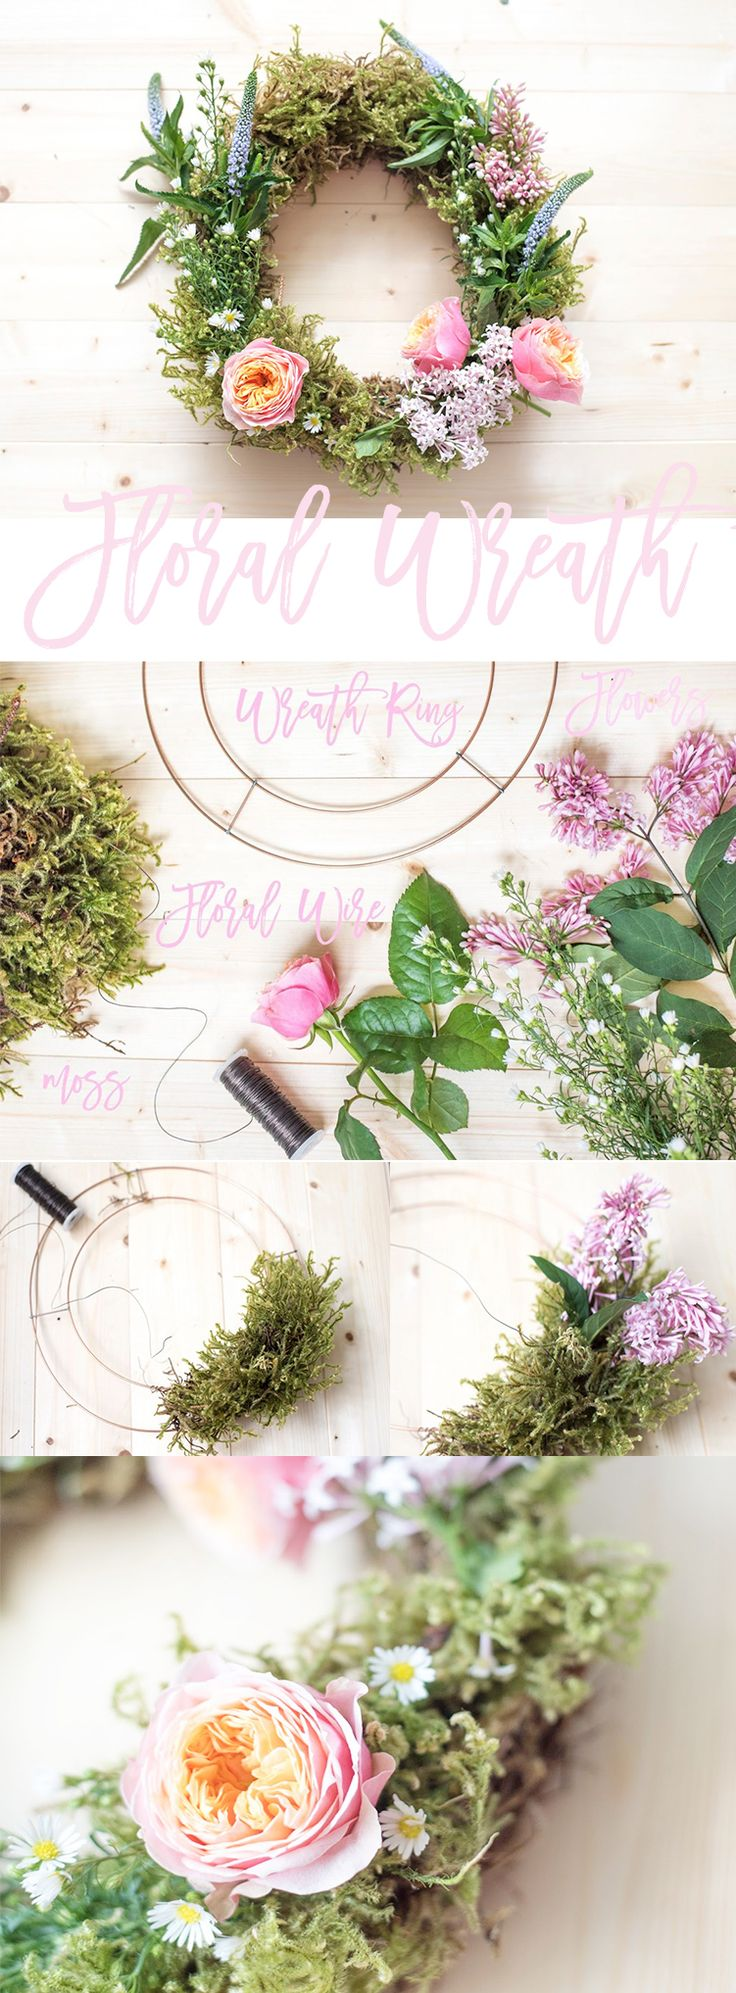 The easiest, simplest way to make a pretty floral wreath to fragrance your home, and bring a little bit of the outdoors indoors!  Costs a fraction of what it would from the florists!